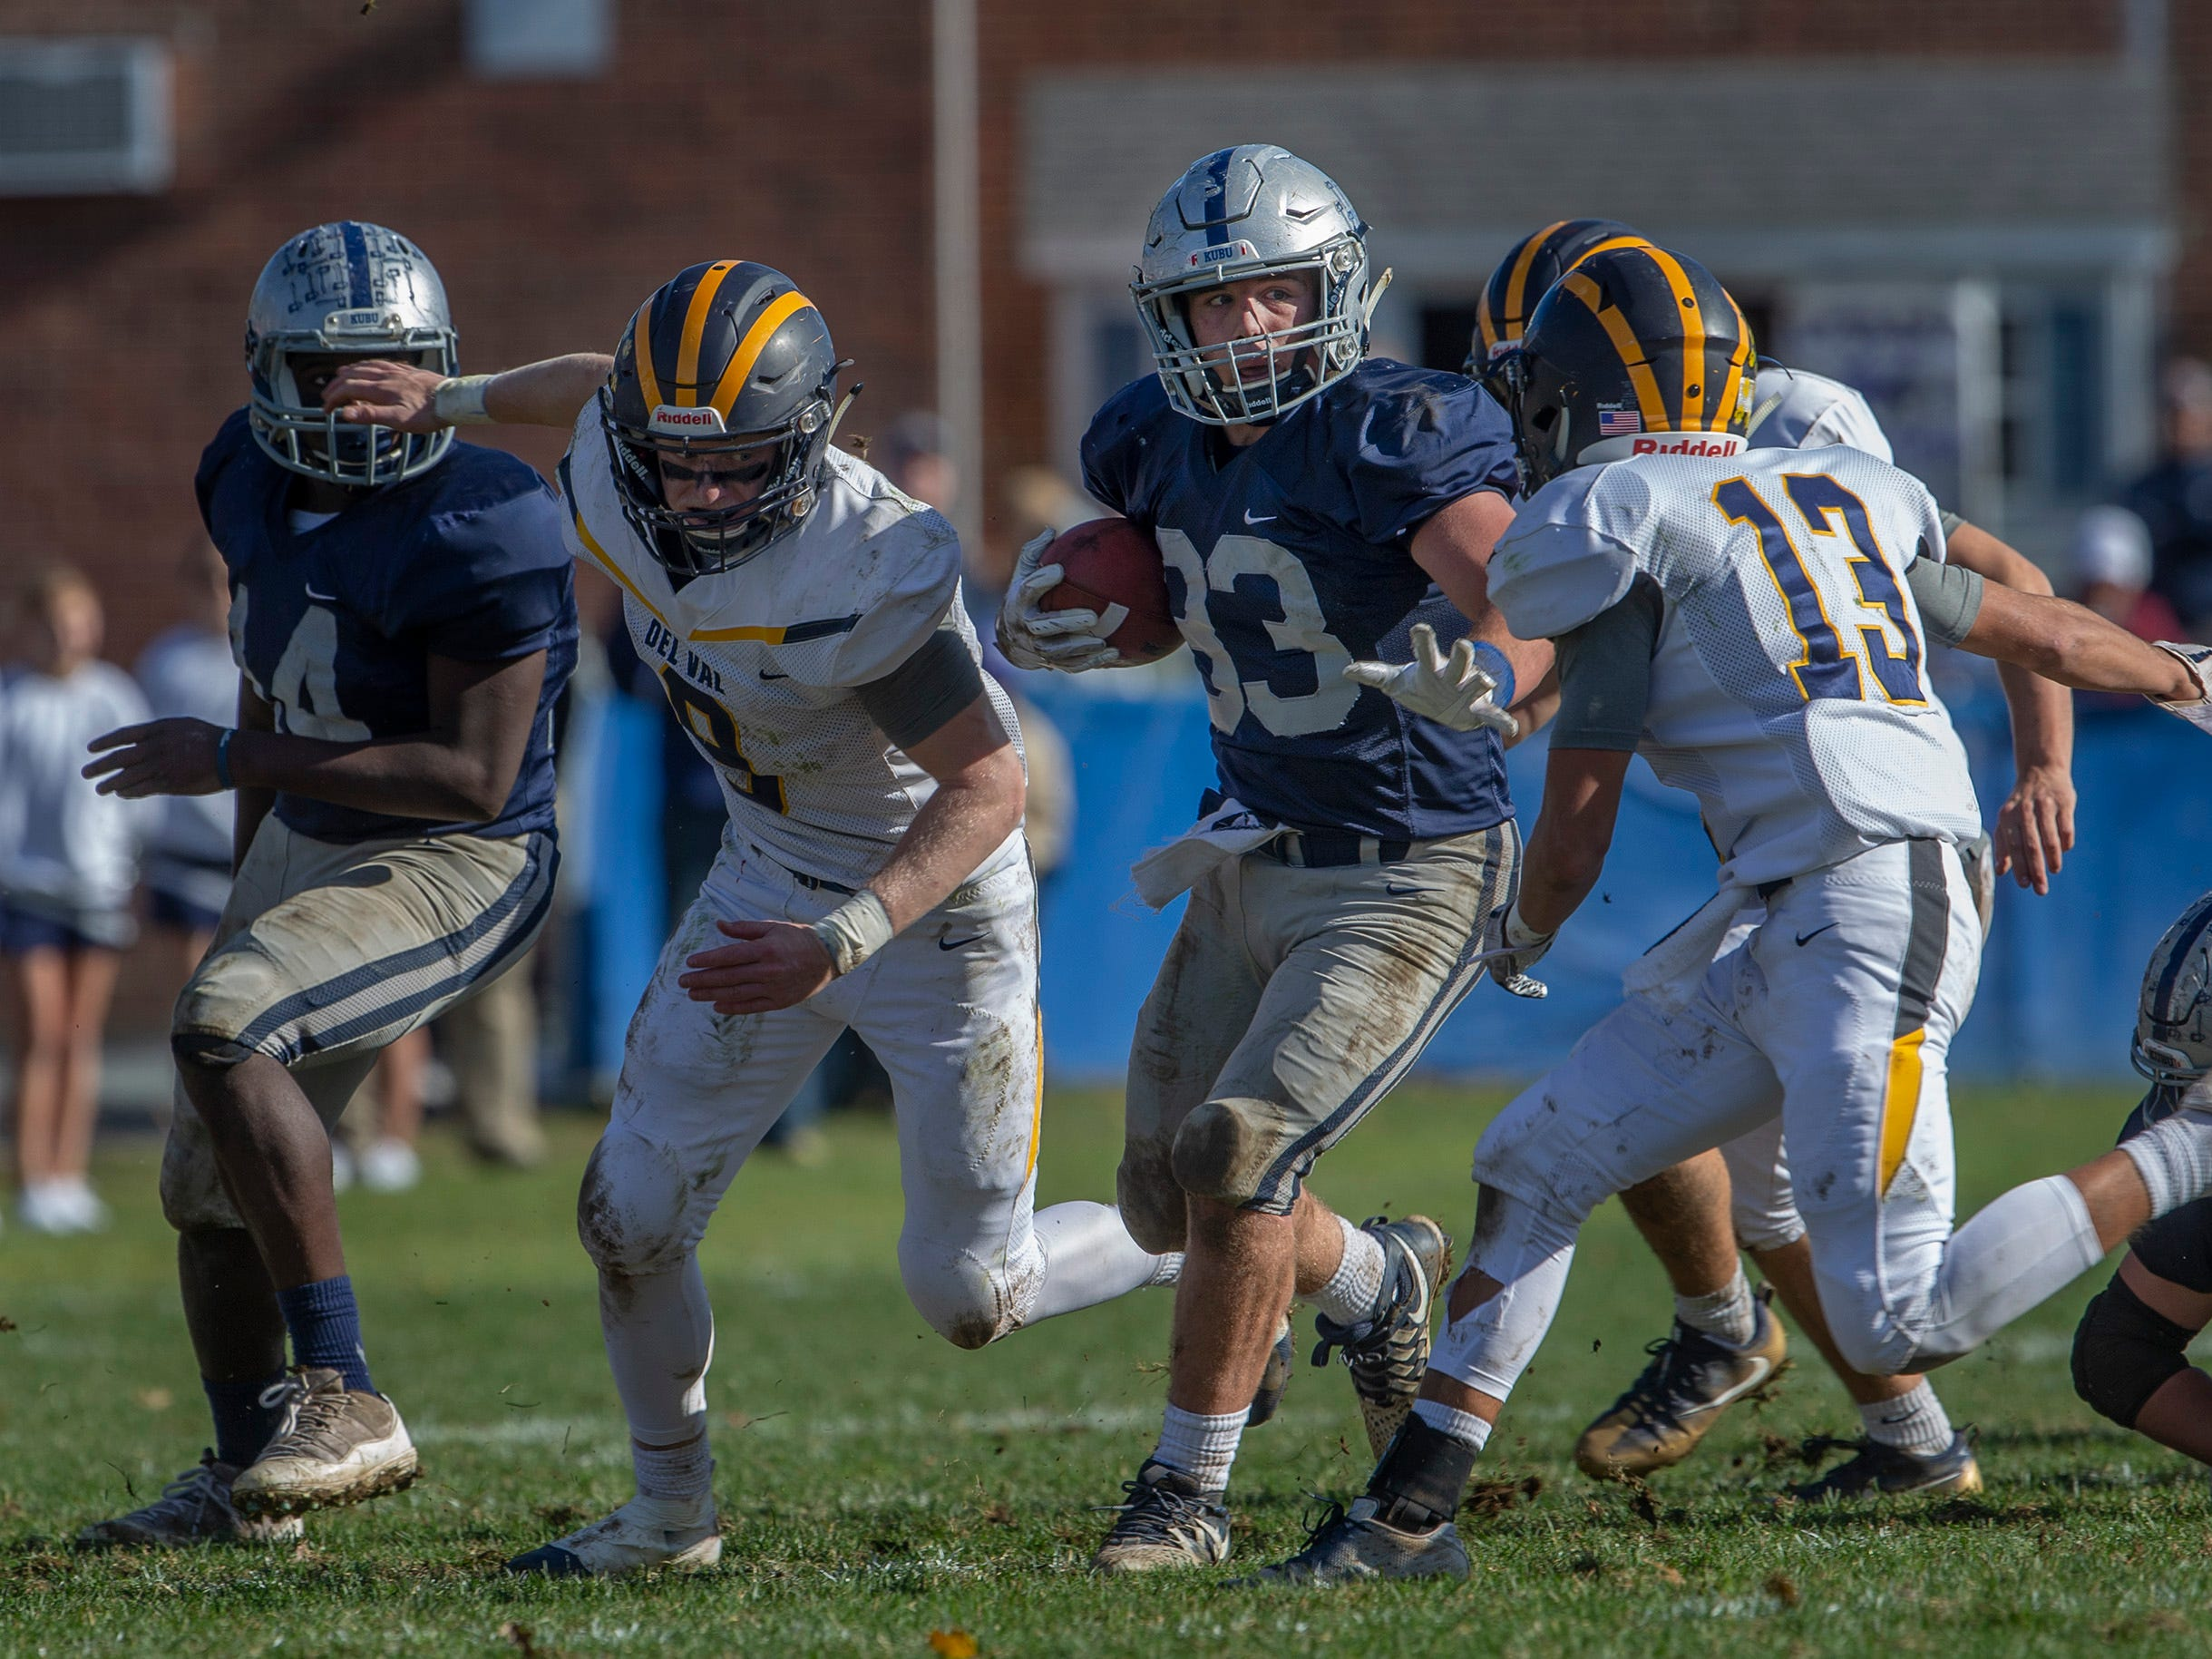 Manasquan Football buries Delaware Valley in NJSIAA opening round game in Manasquan NJ. On November 3, 2018.